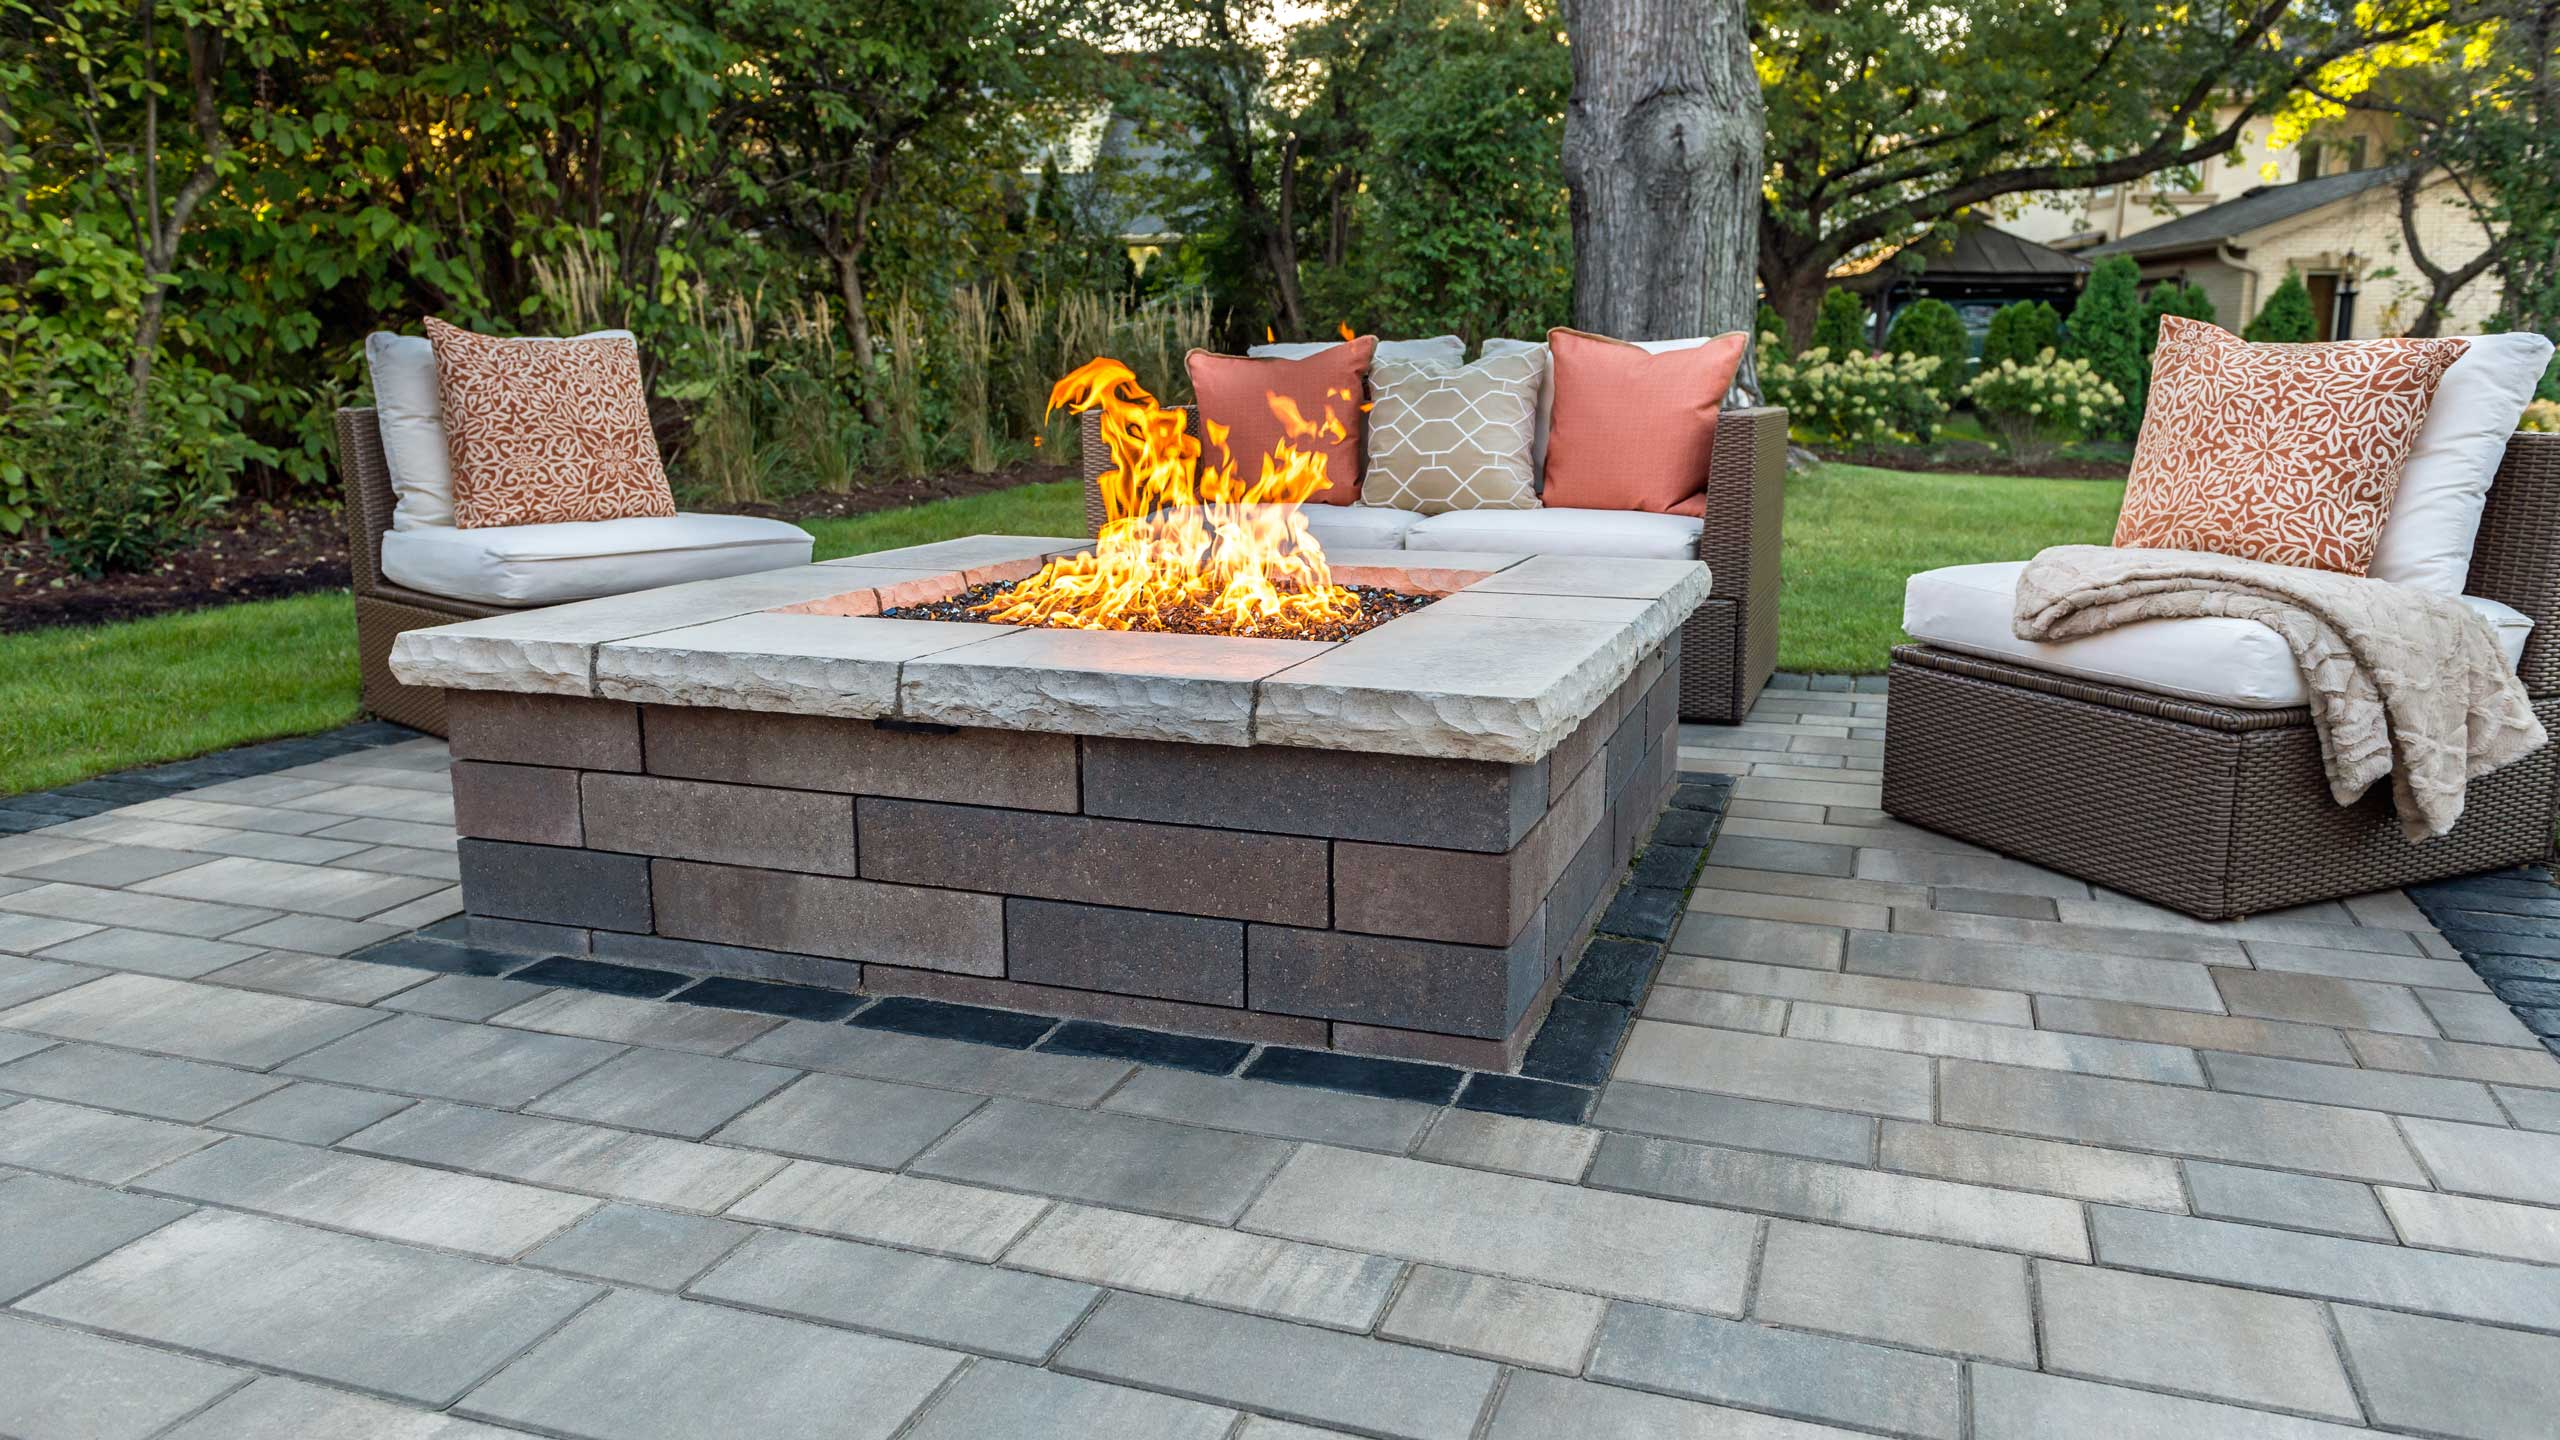 Contemporary Unilock Lineo Dimensional Stone fire feature and Artline linear plank paver patio